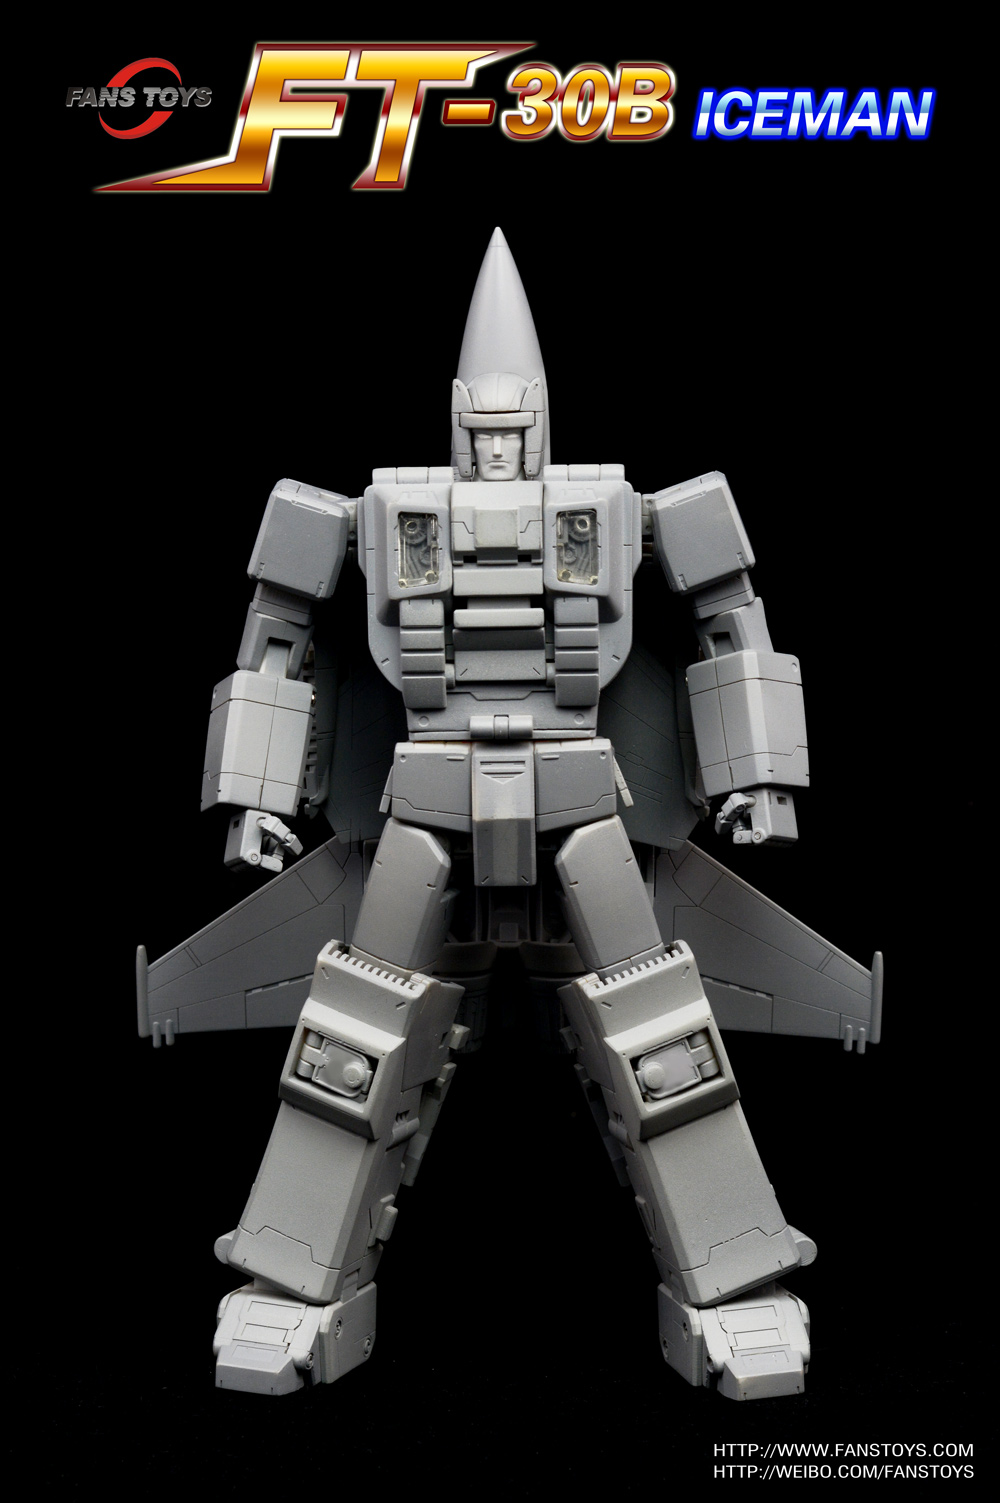 Free Shipping Sites >> Fans Toys FT-30B Iceman (Masterpiece Scale Air Raid) - Transformers News - TFW2005